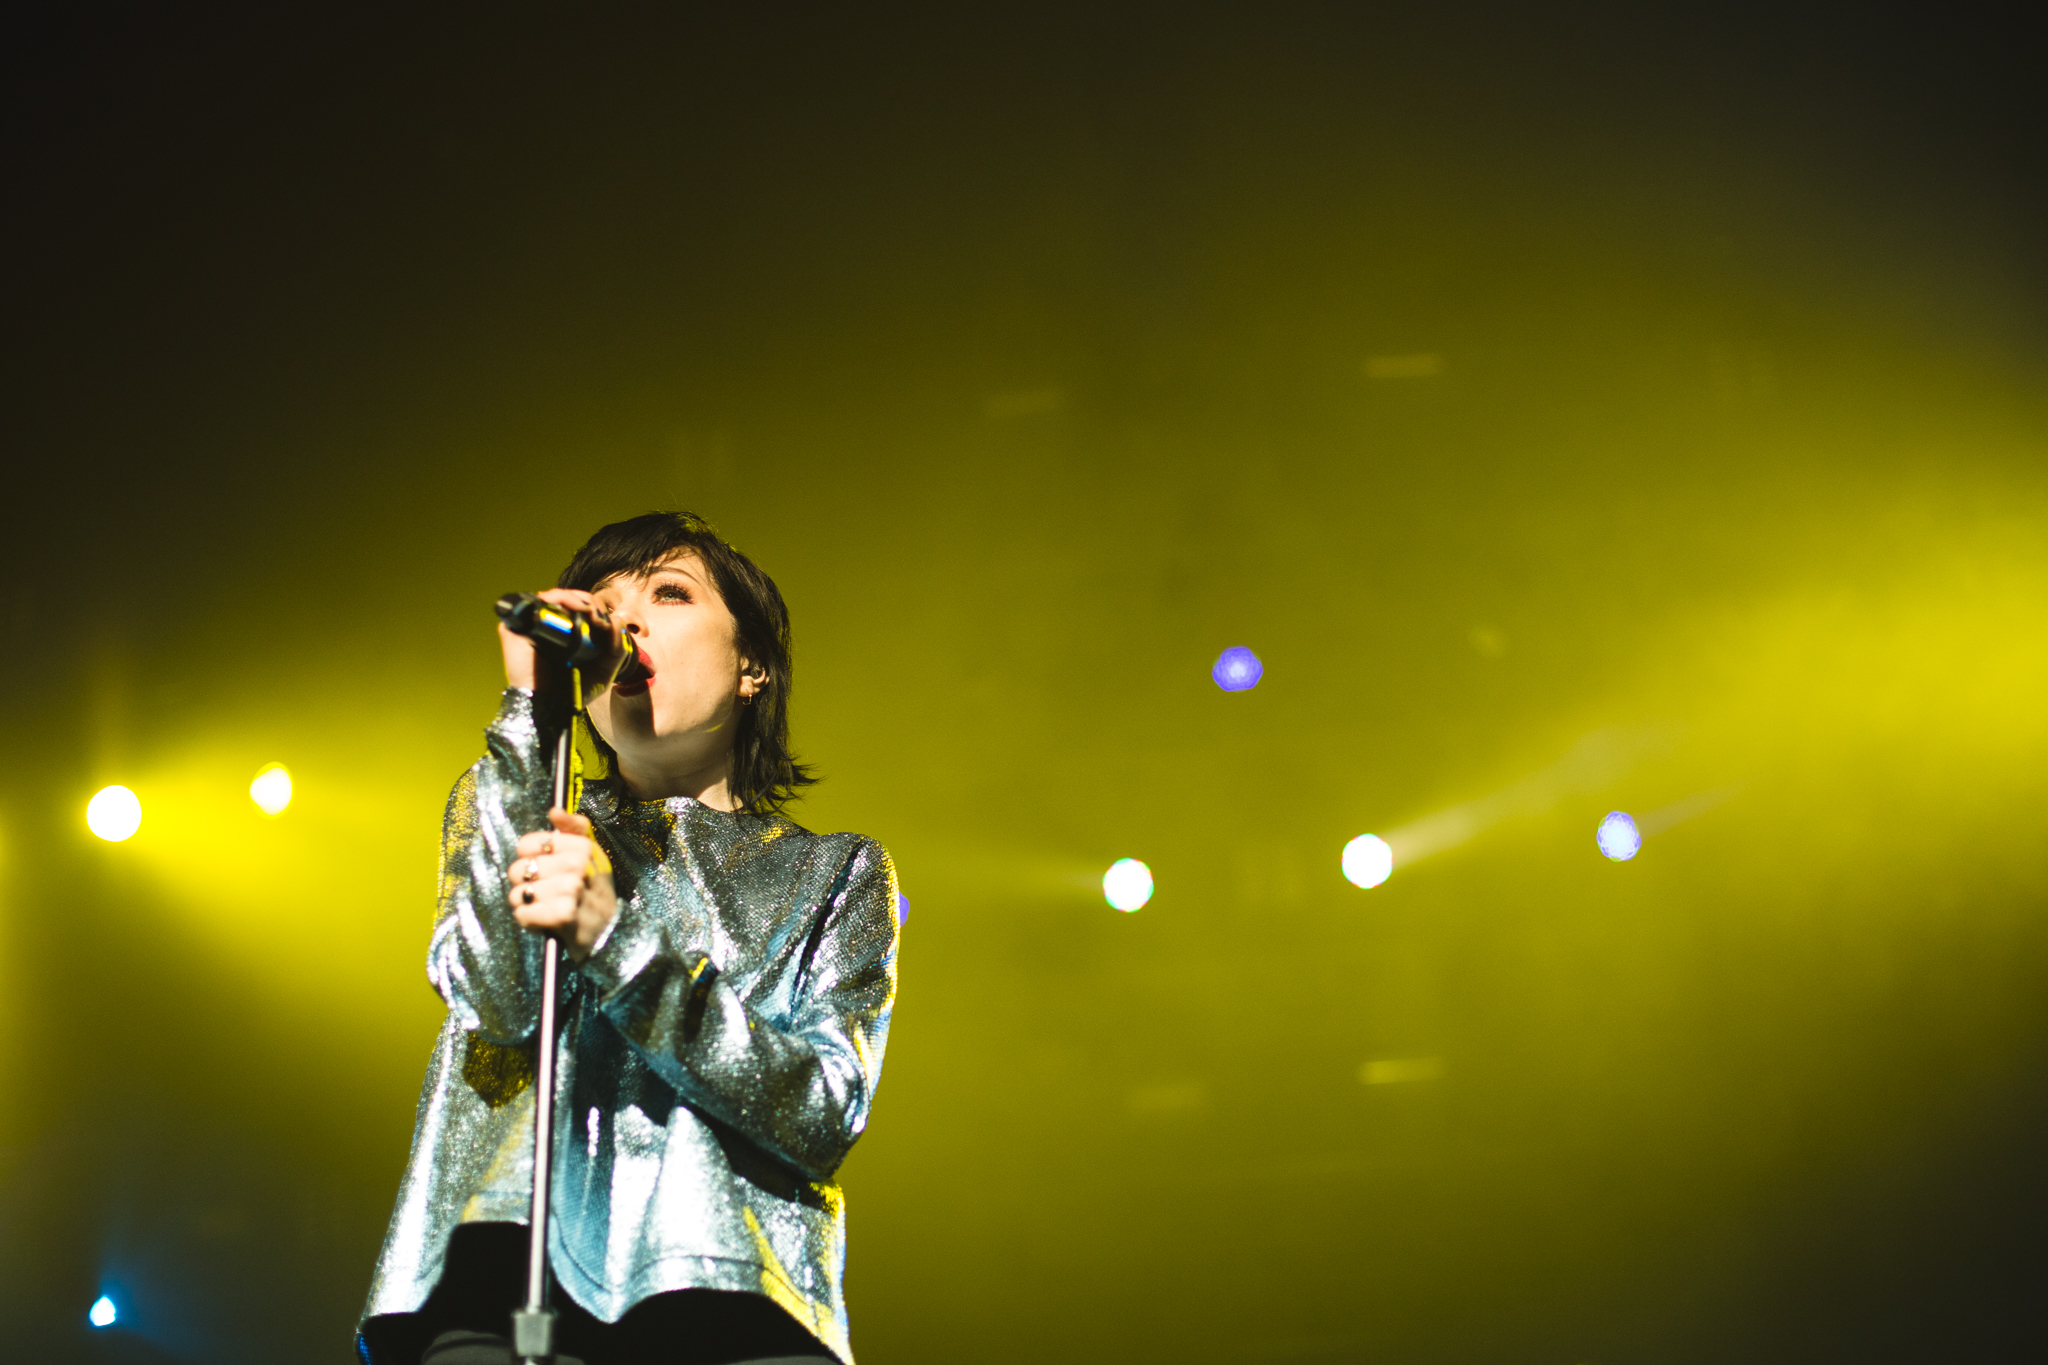 Carly Rae Jepsen - Photo by Lindsey Blane